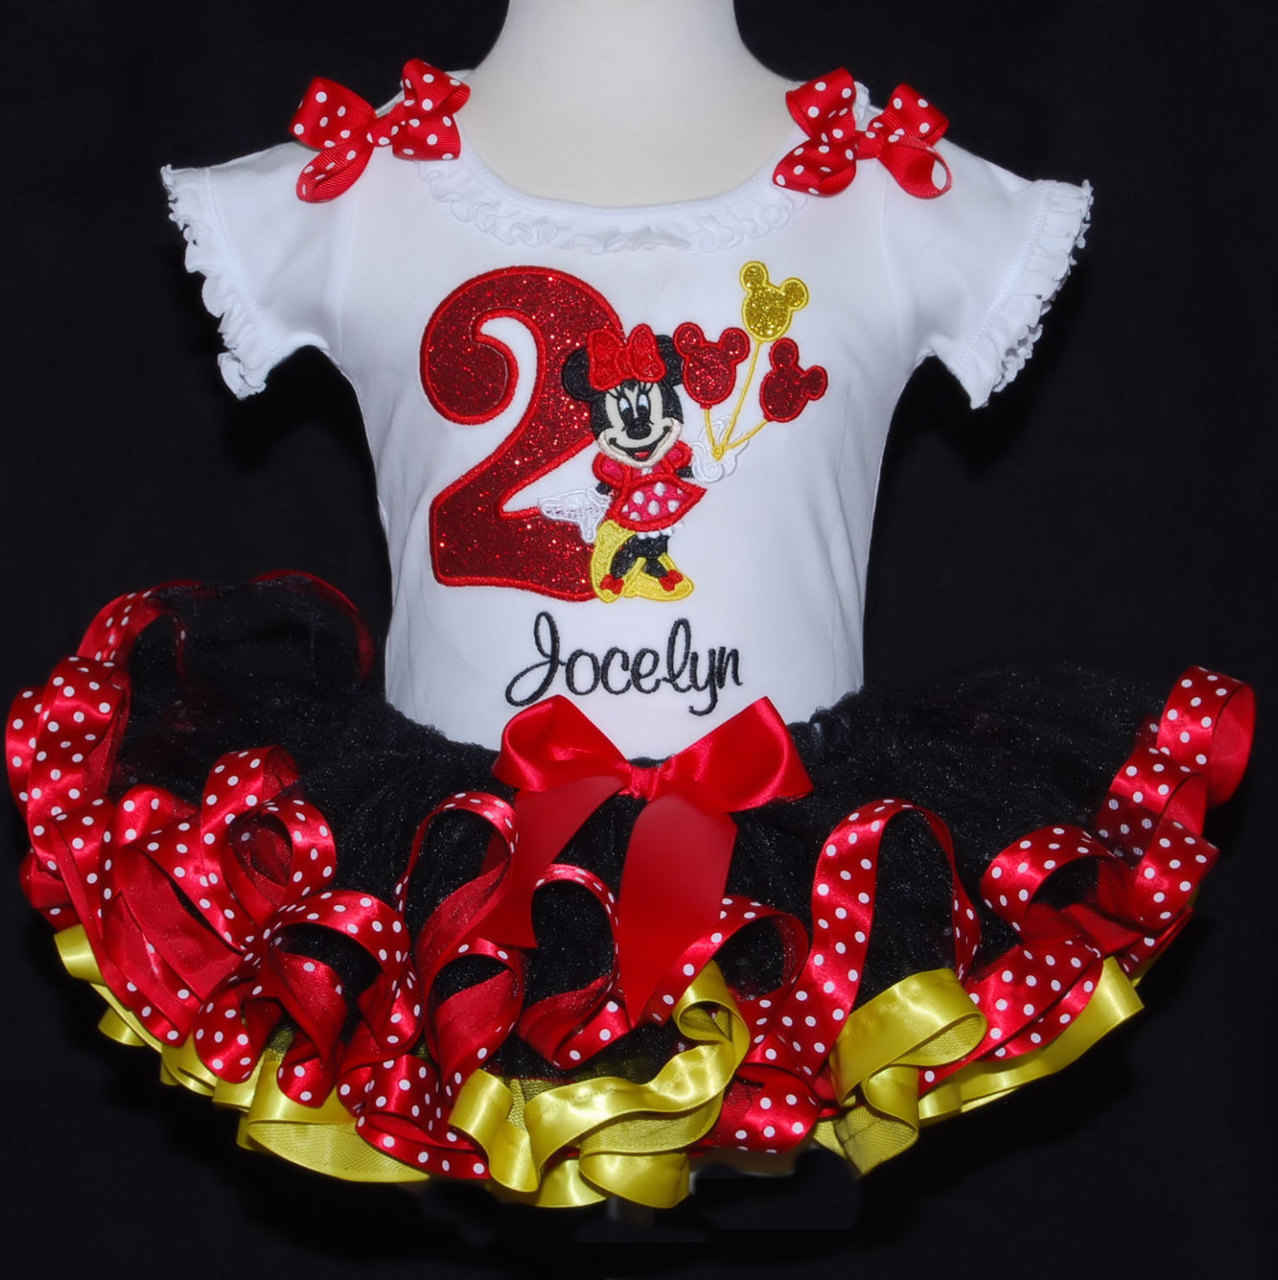 Sparkle Minnie Mouse 2nd Birthday Tutu Outfit Platinum Collection Red, Yellow and Black 2 pieces top and tutu only